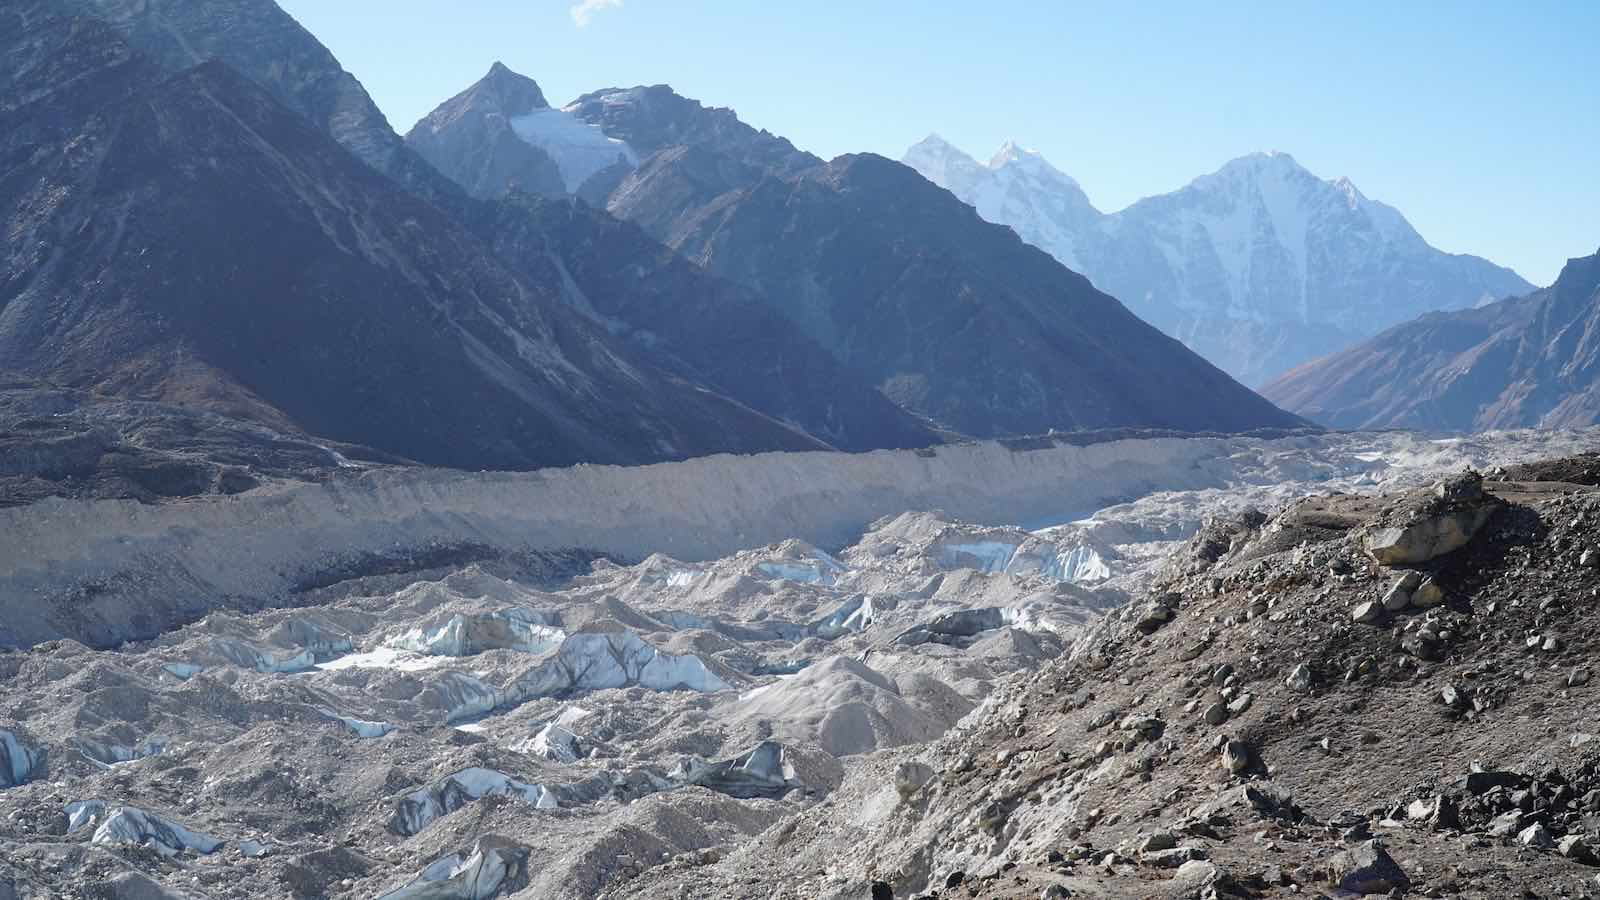 Most of the trek followed the Khumbu Glacier